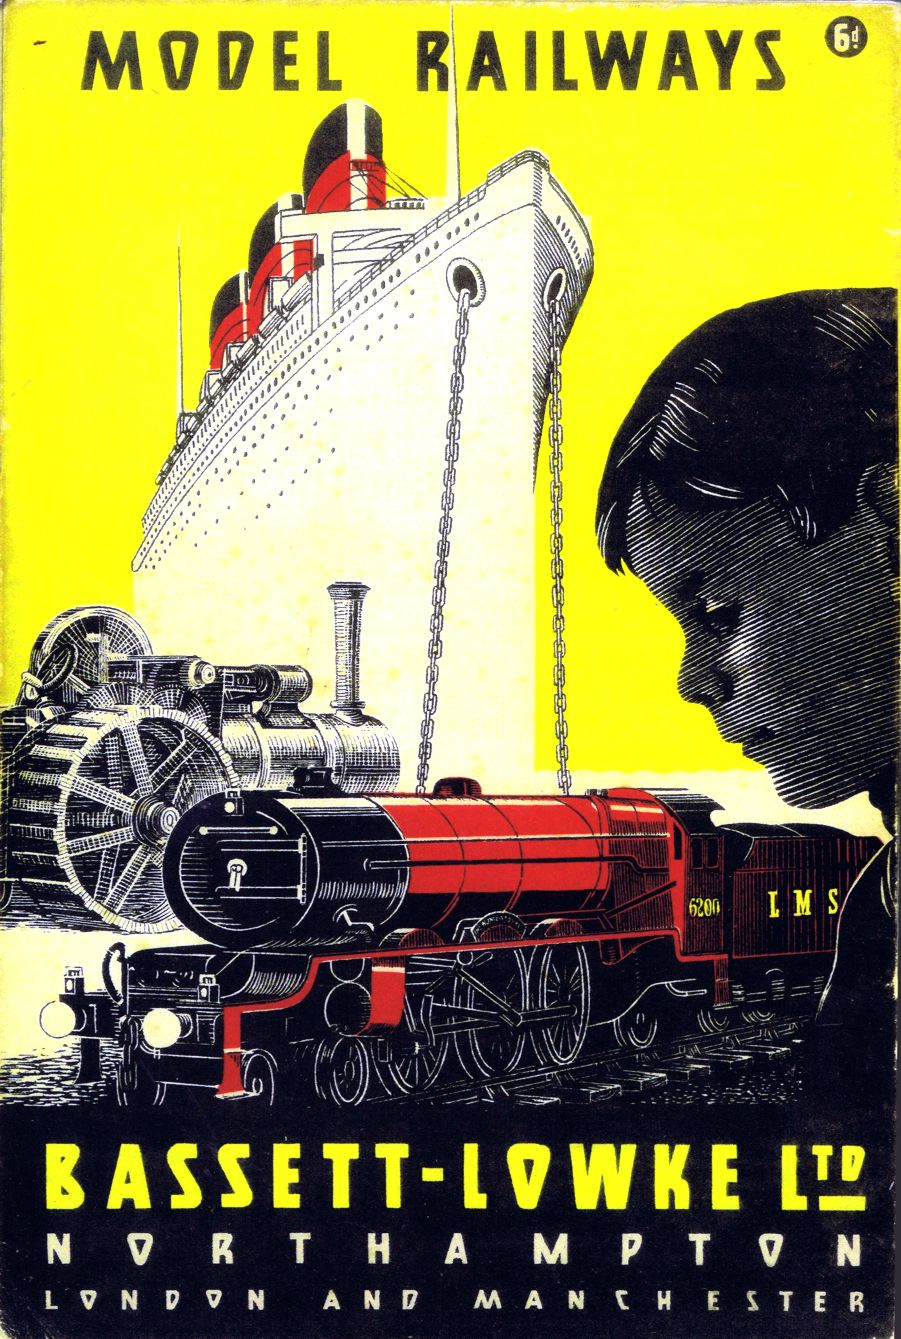 """Model Railways"", Bassett-Lowke Ltd., catalogue, front cover, yellow and black"